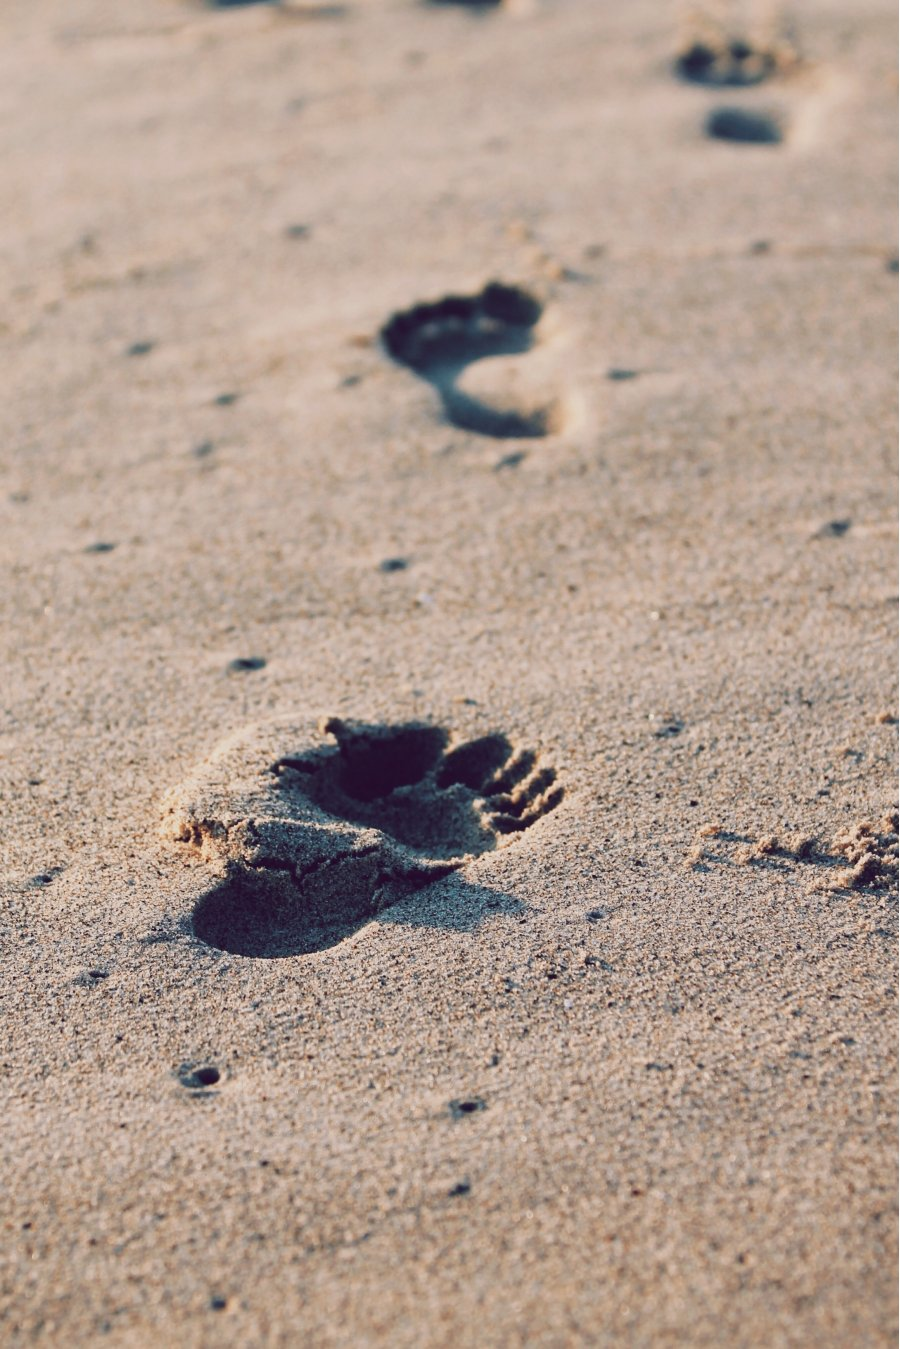 Free Photos: Footprints in the sand | Nature | Chris Sardegna